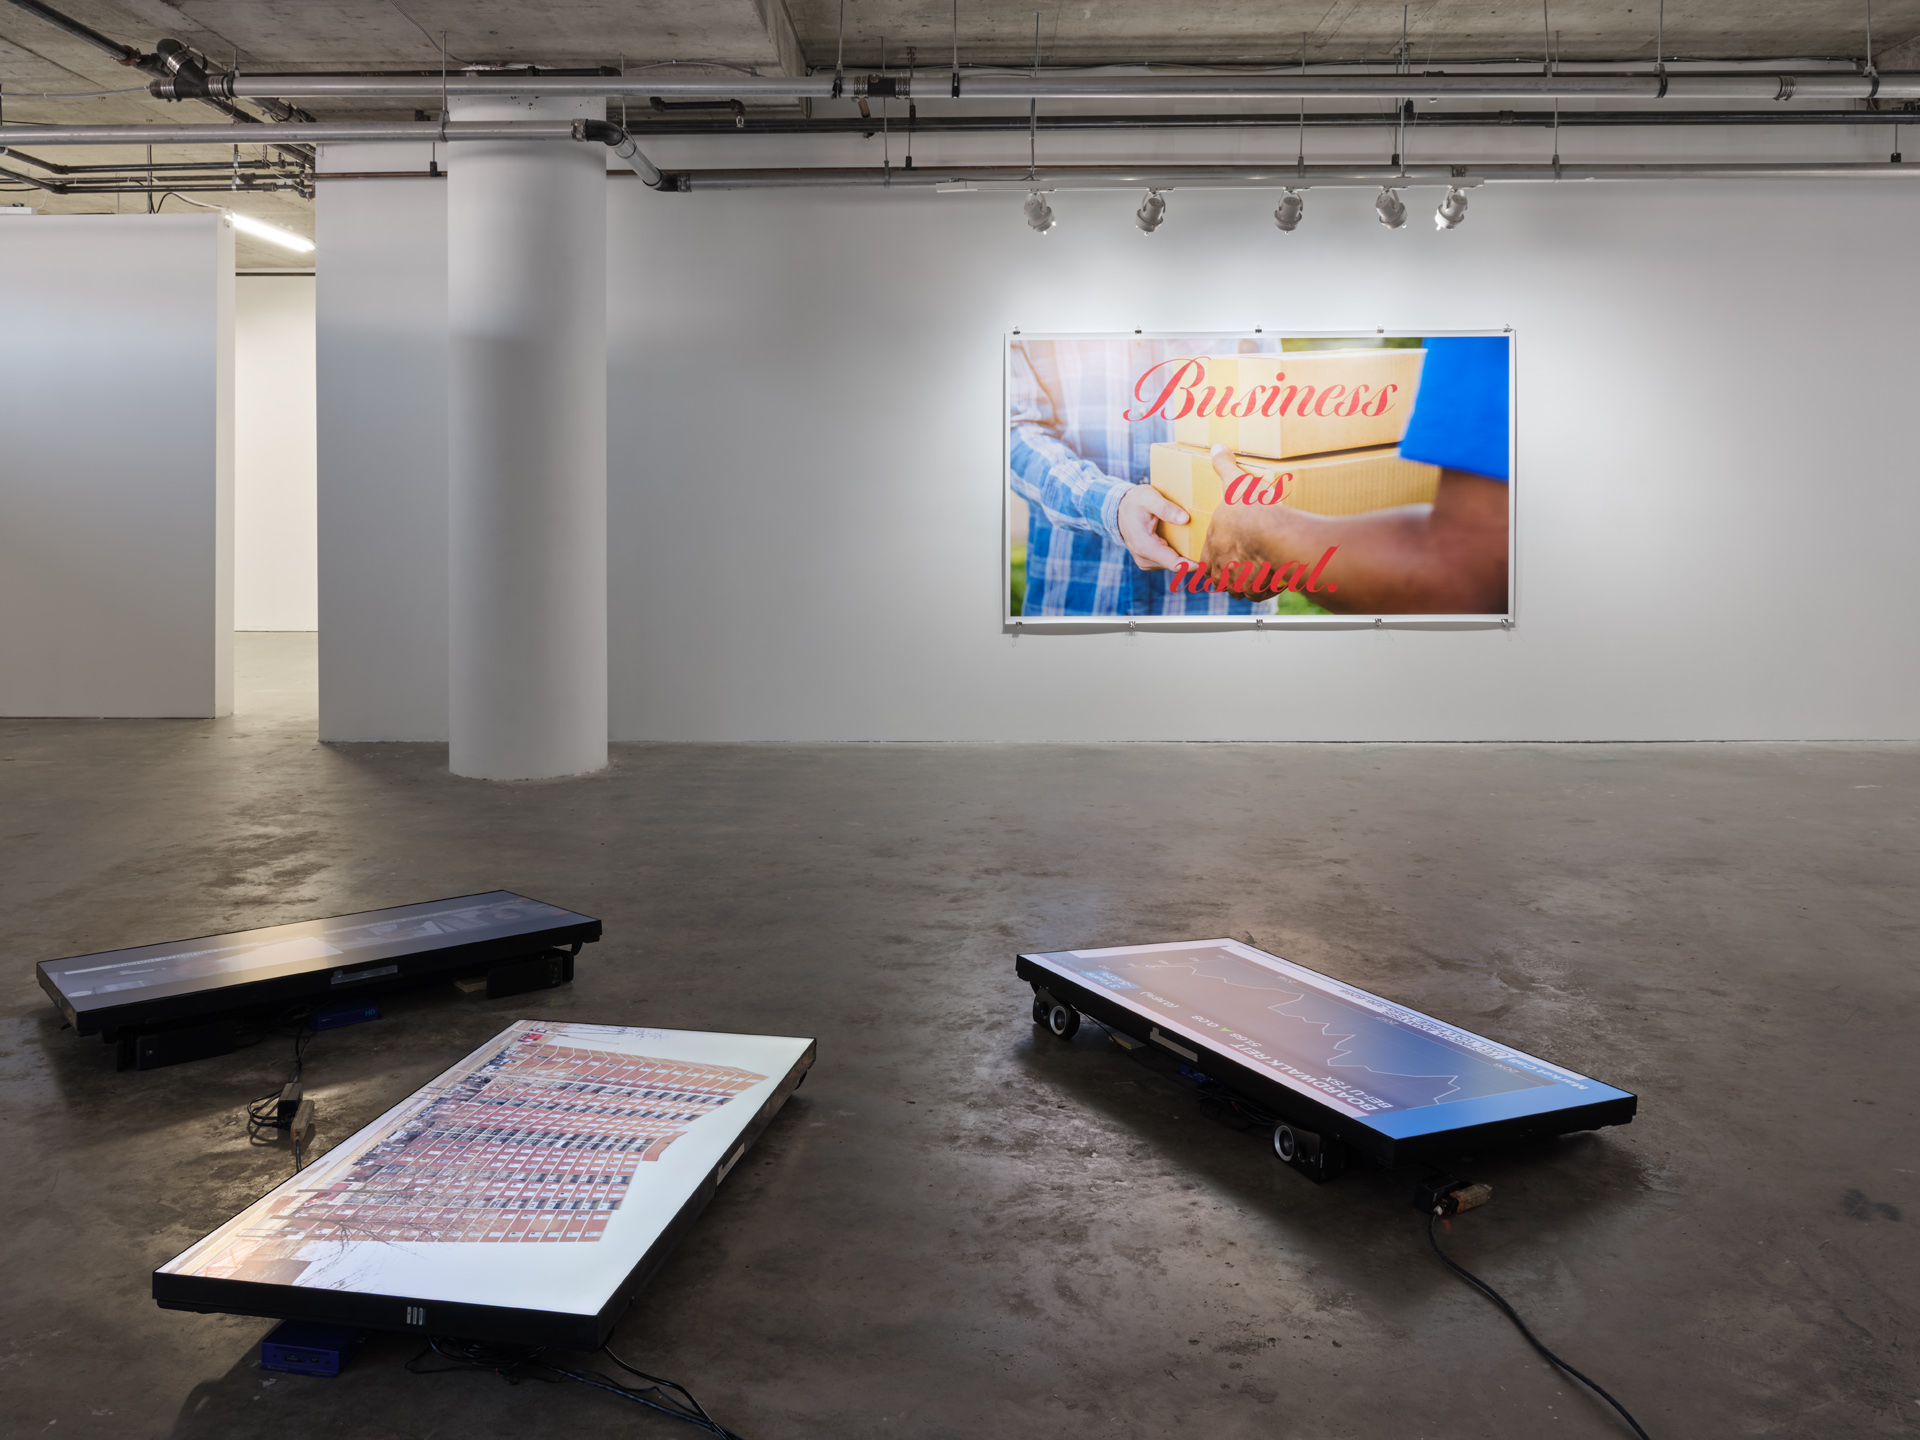 Exhibition Exclusion Acts by Will Kwan, as installed at Centre A in 2021. Photo: Rachel Topham.